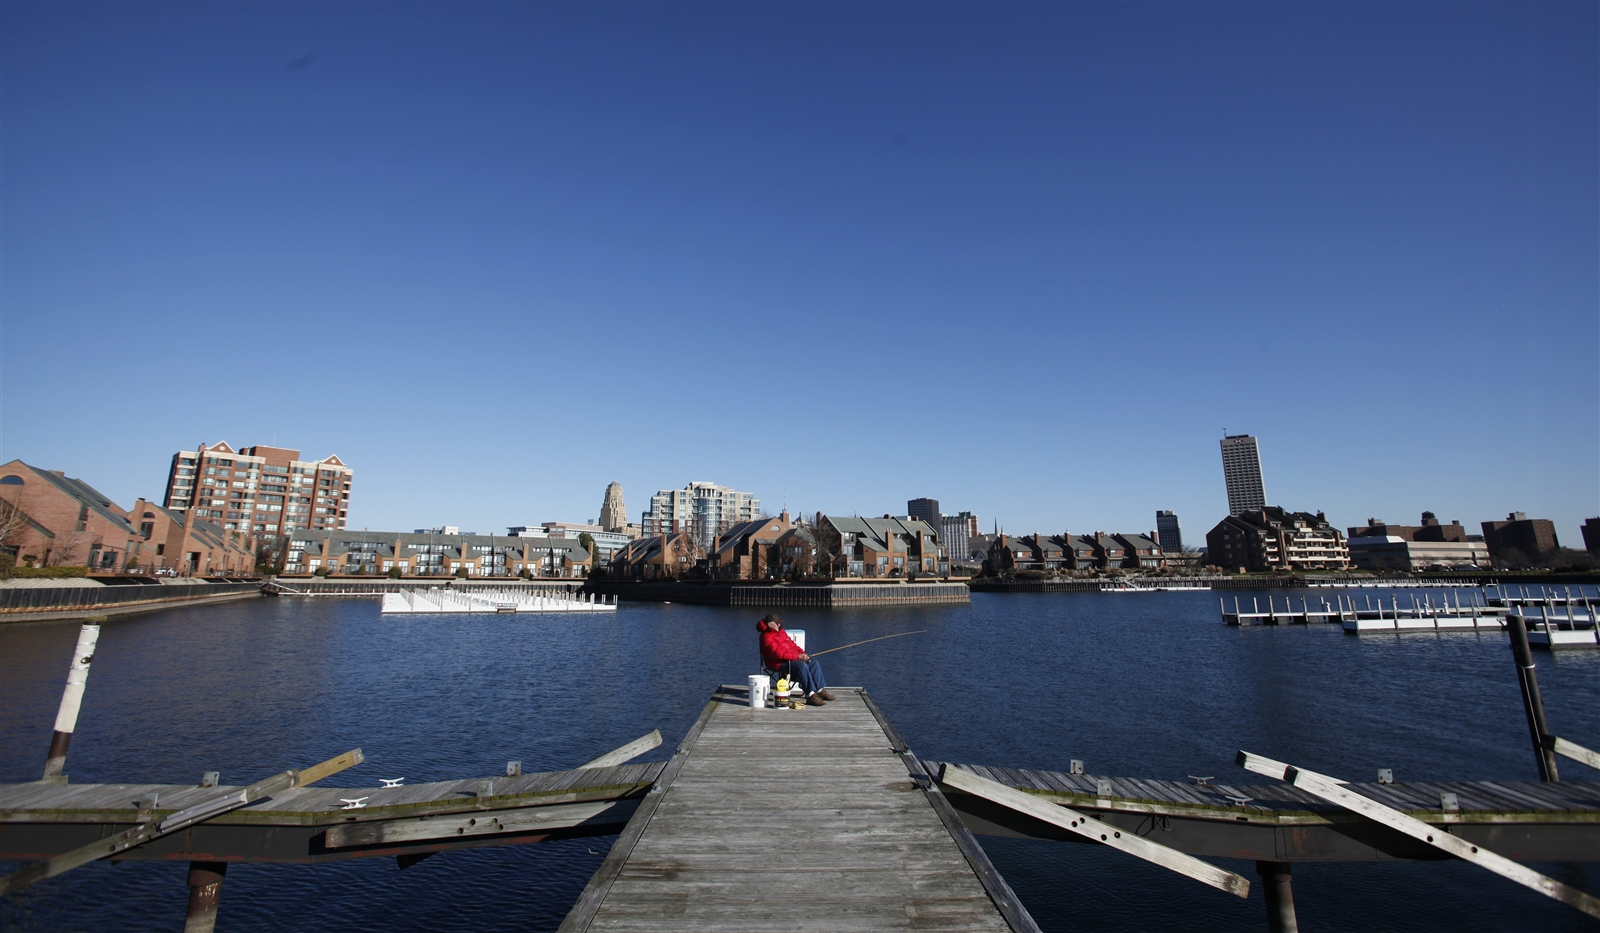 A man goes fishing for perch  along the docks of the Erie Basin  Marina on Dec. 13, 2012.